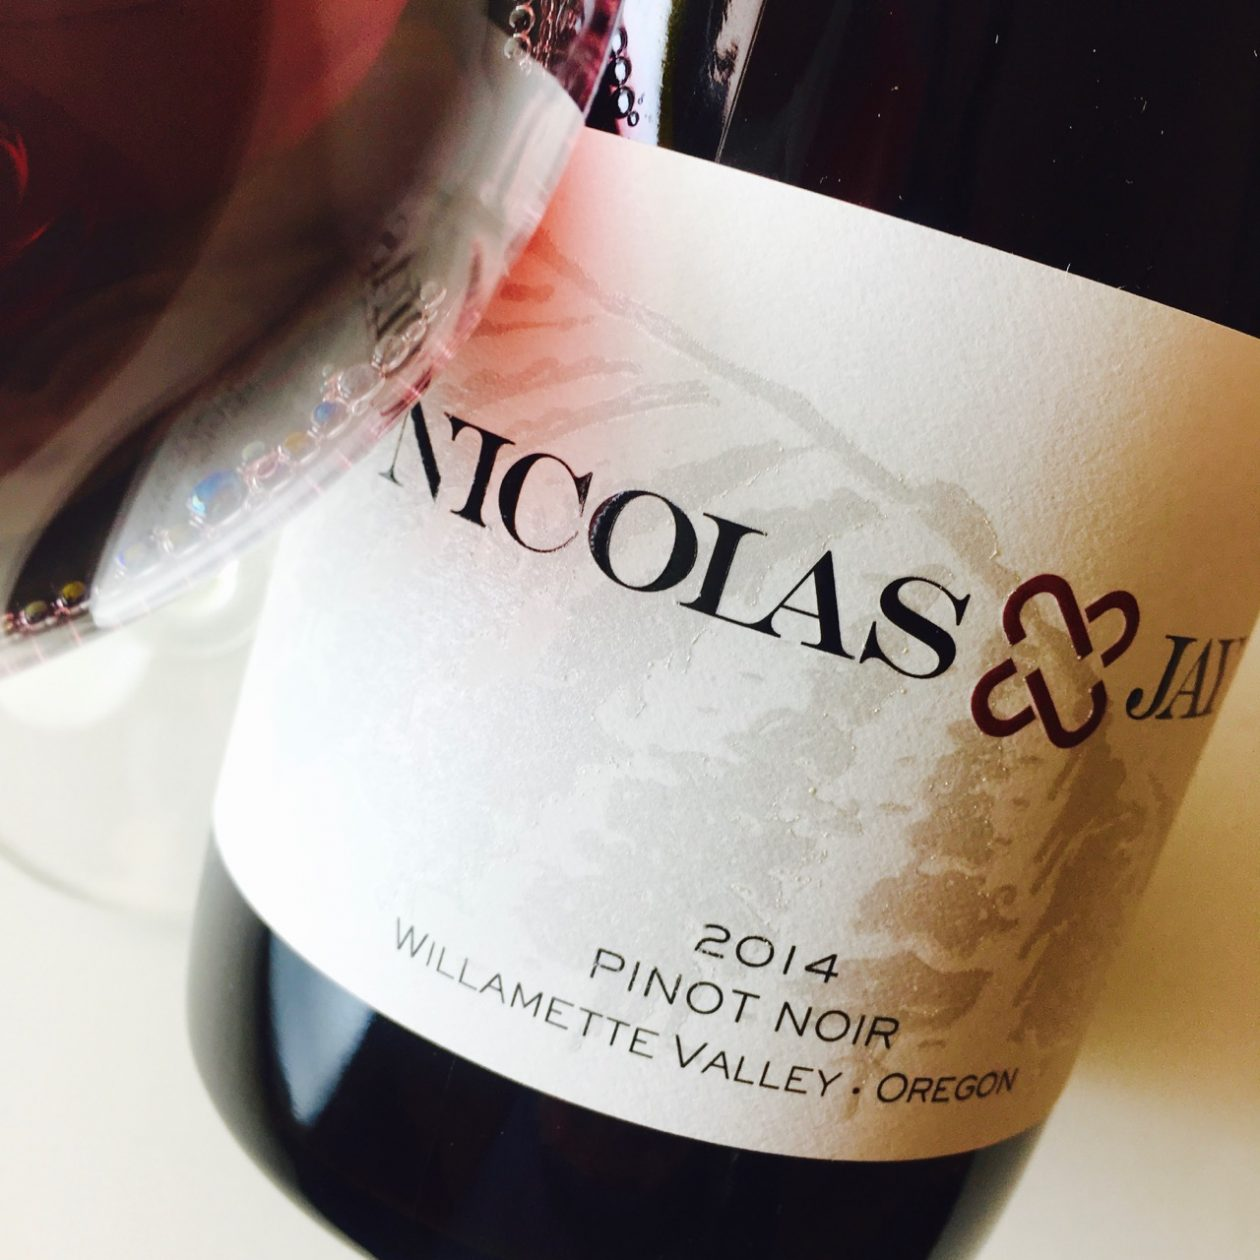 2014 Nicolas Jay Pinot Noir Willamette Valley